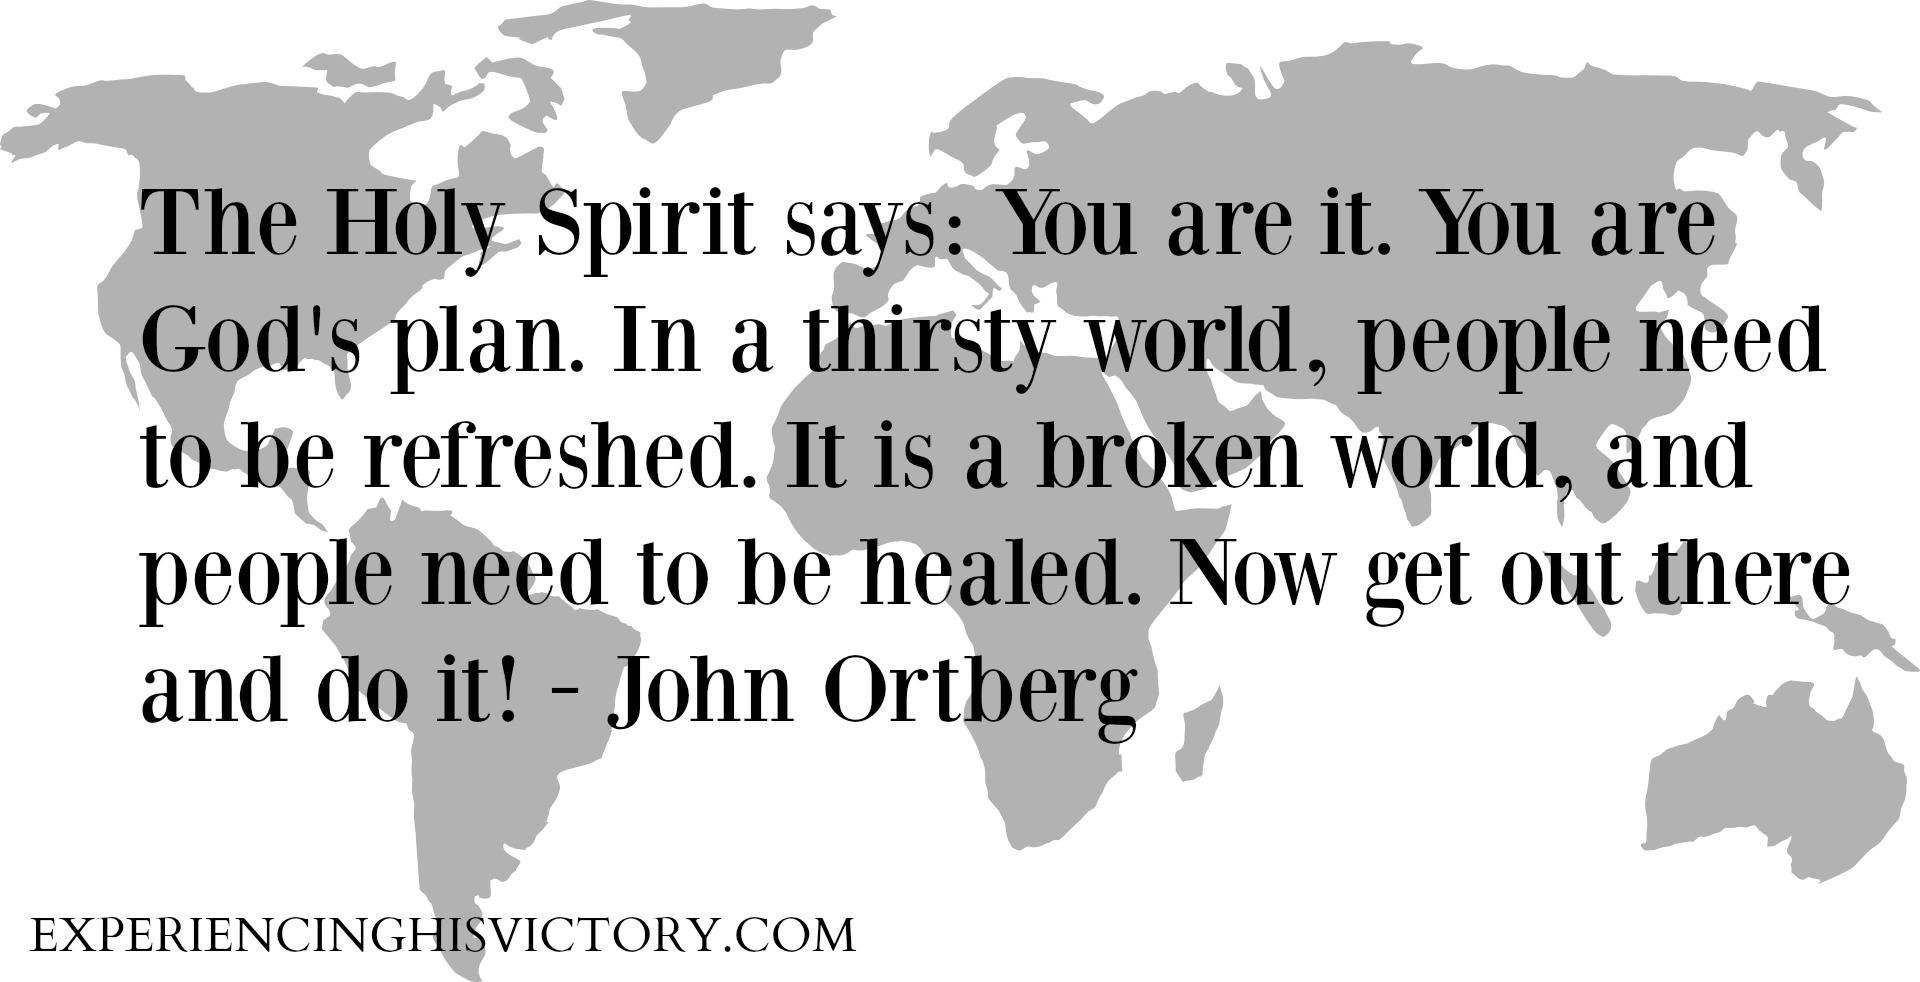 The Holy Spirit says: You are it. You are God's plan. In a thirsty world, people need to be refreshed. It is a broken world, and people need to be healed. Now get out there and do it! - John Ortberg